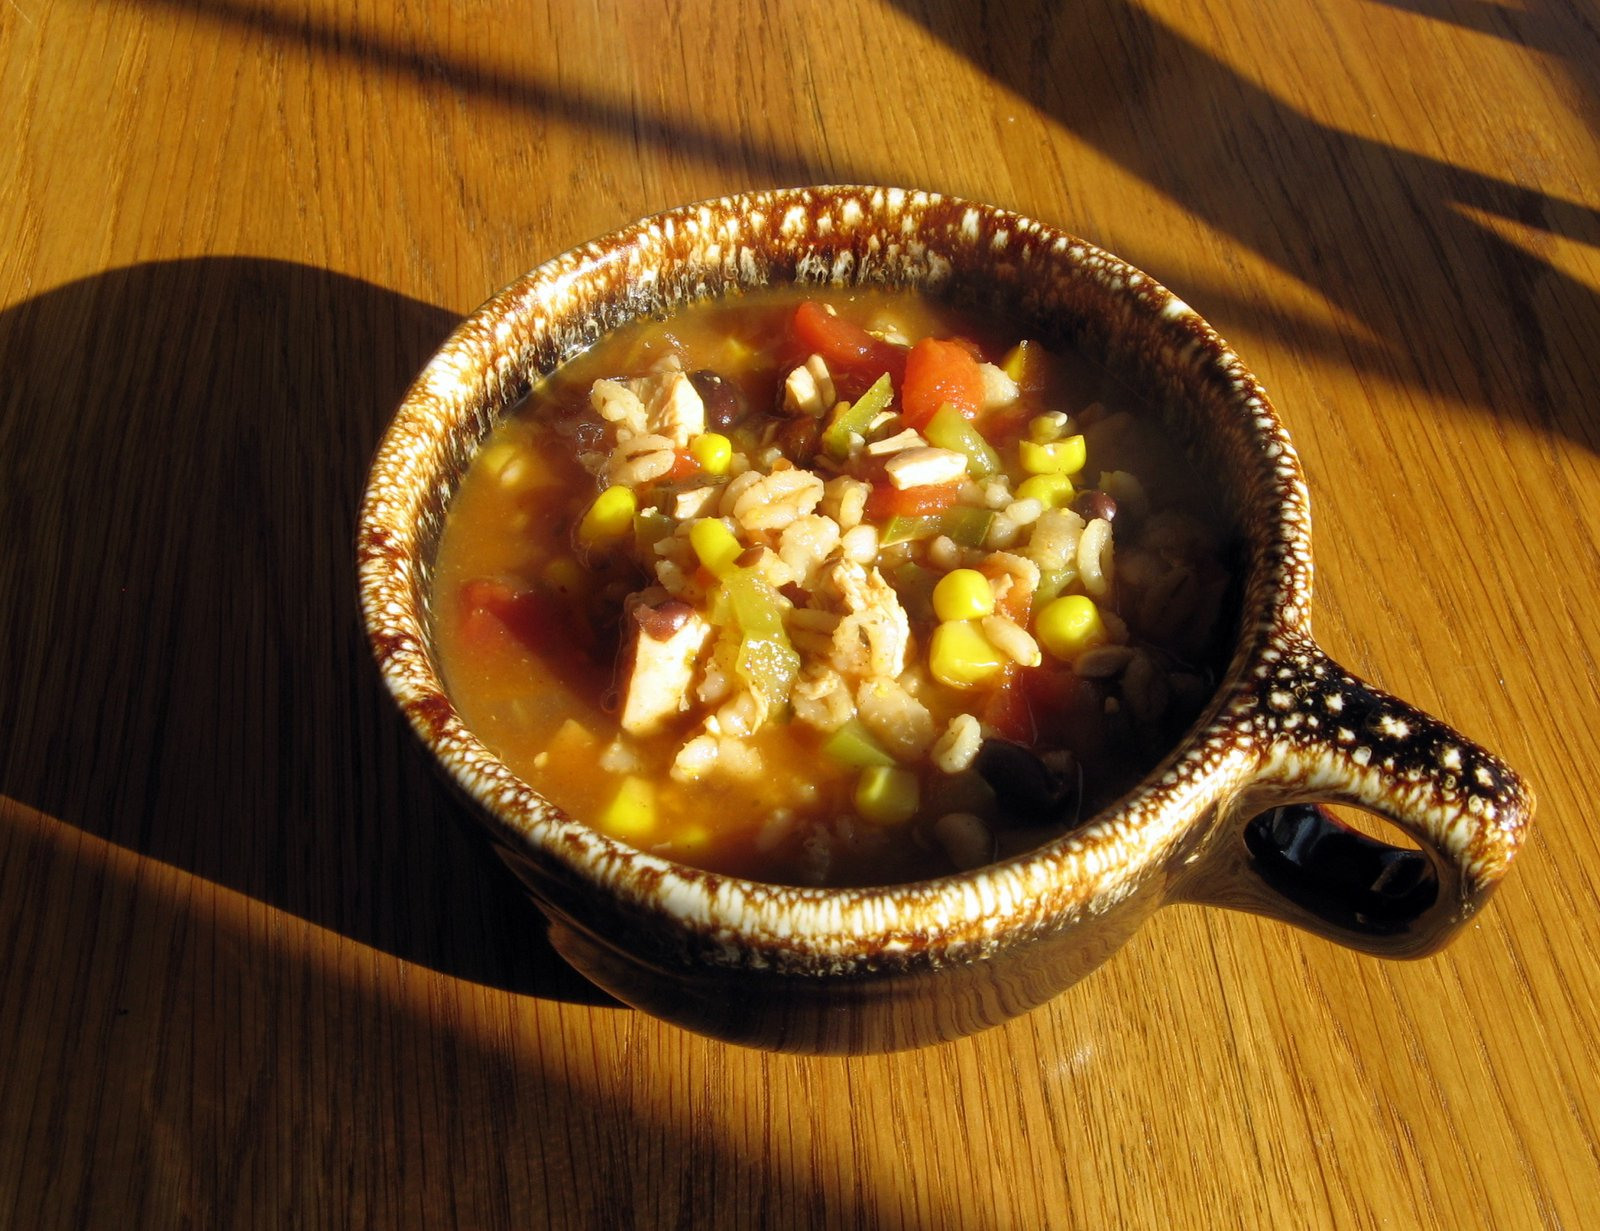 Of Cats and CardstockRecipeSouthwestern Chicken Barley Chili